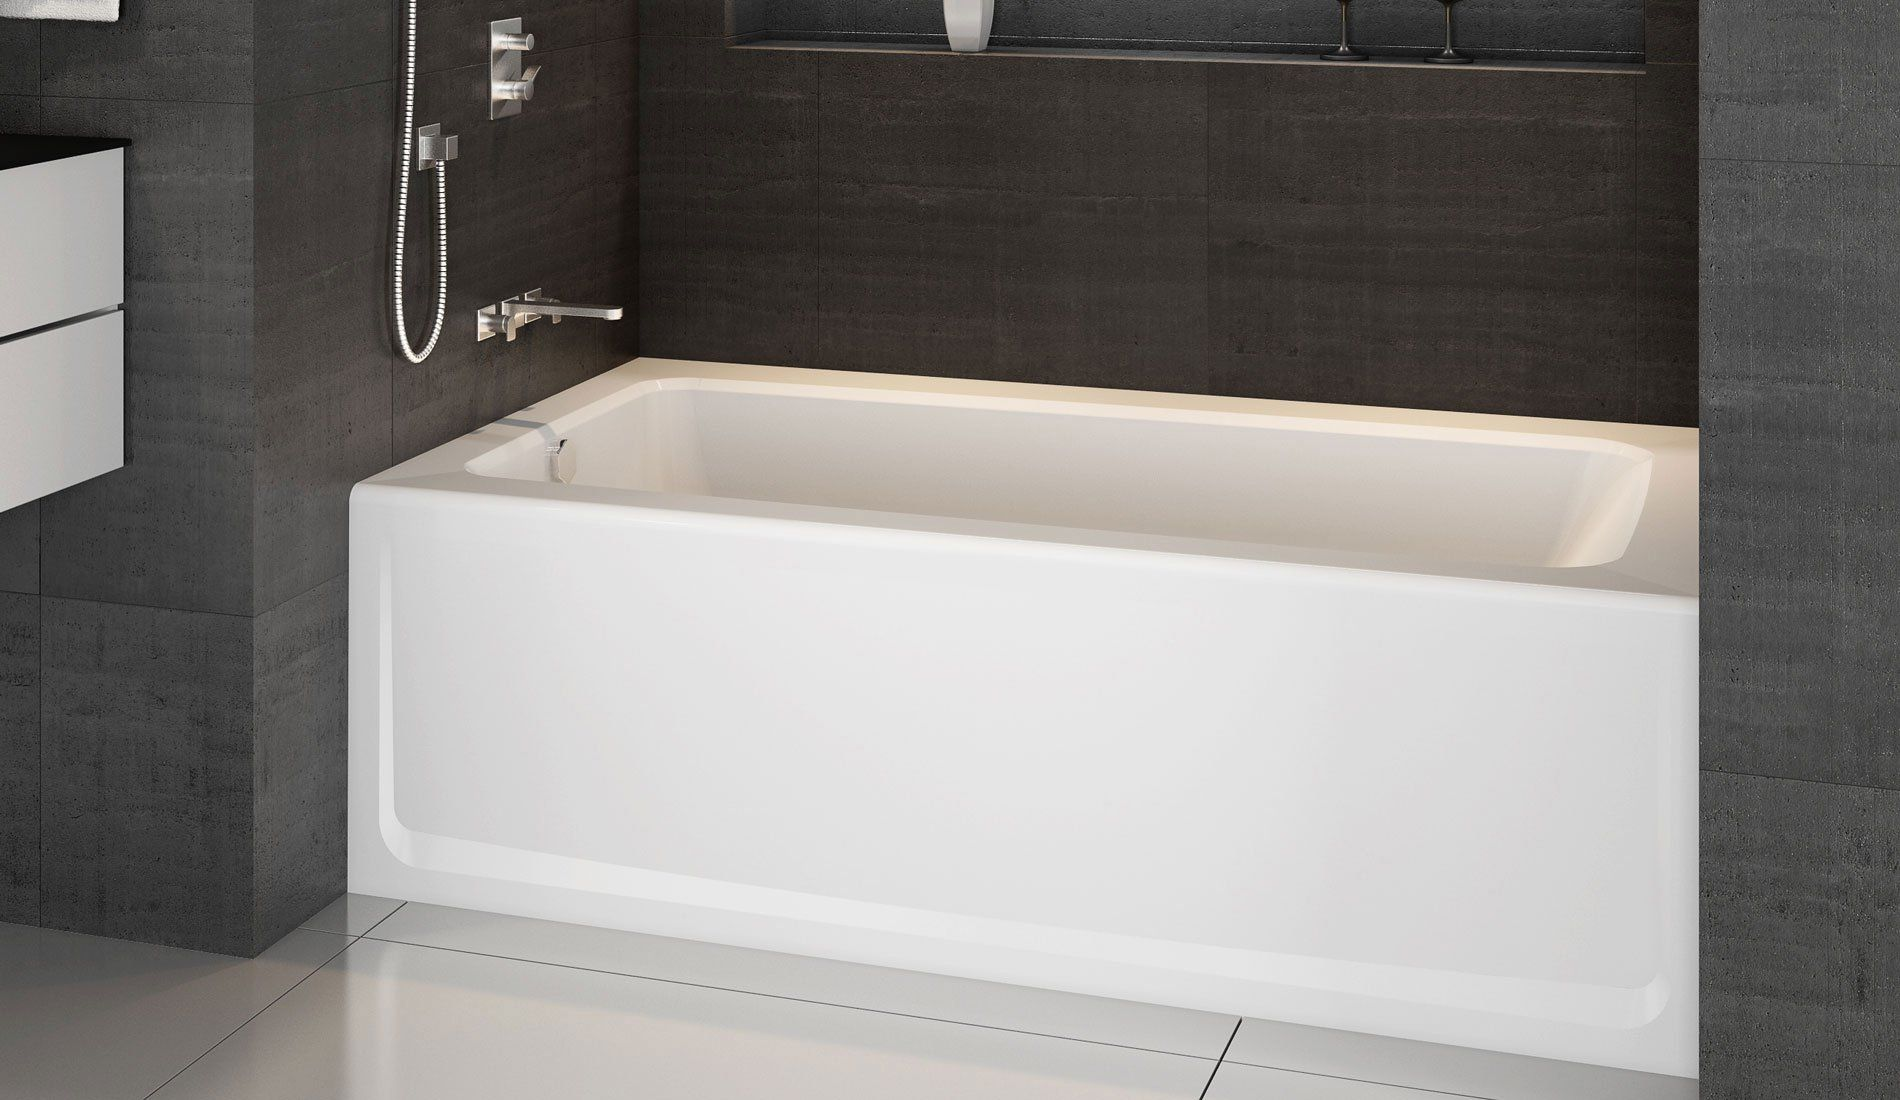 Signature® Rectangle Bath | Jacuzzi, Bath and Luxury bath